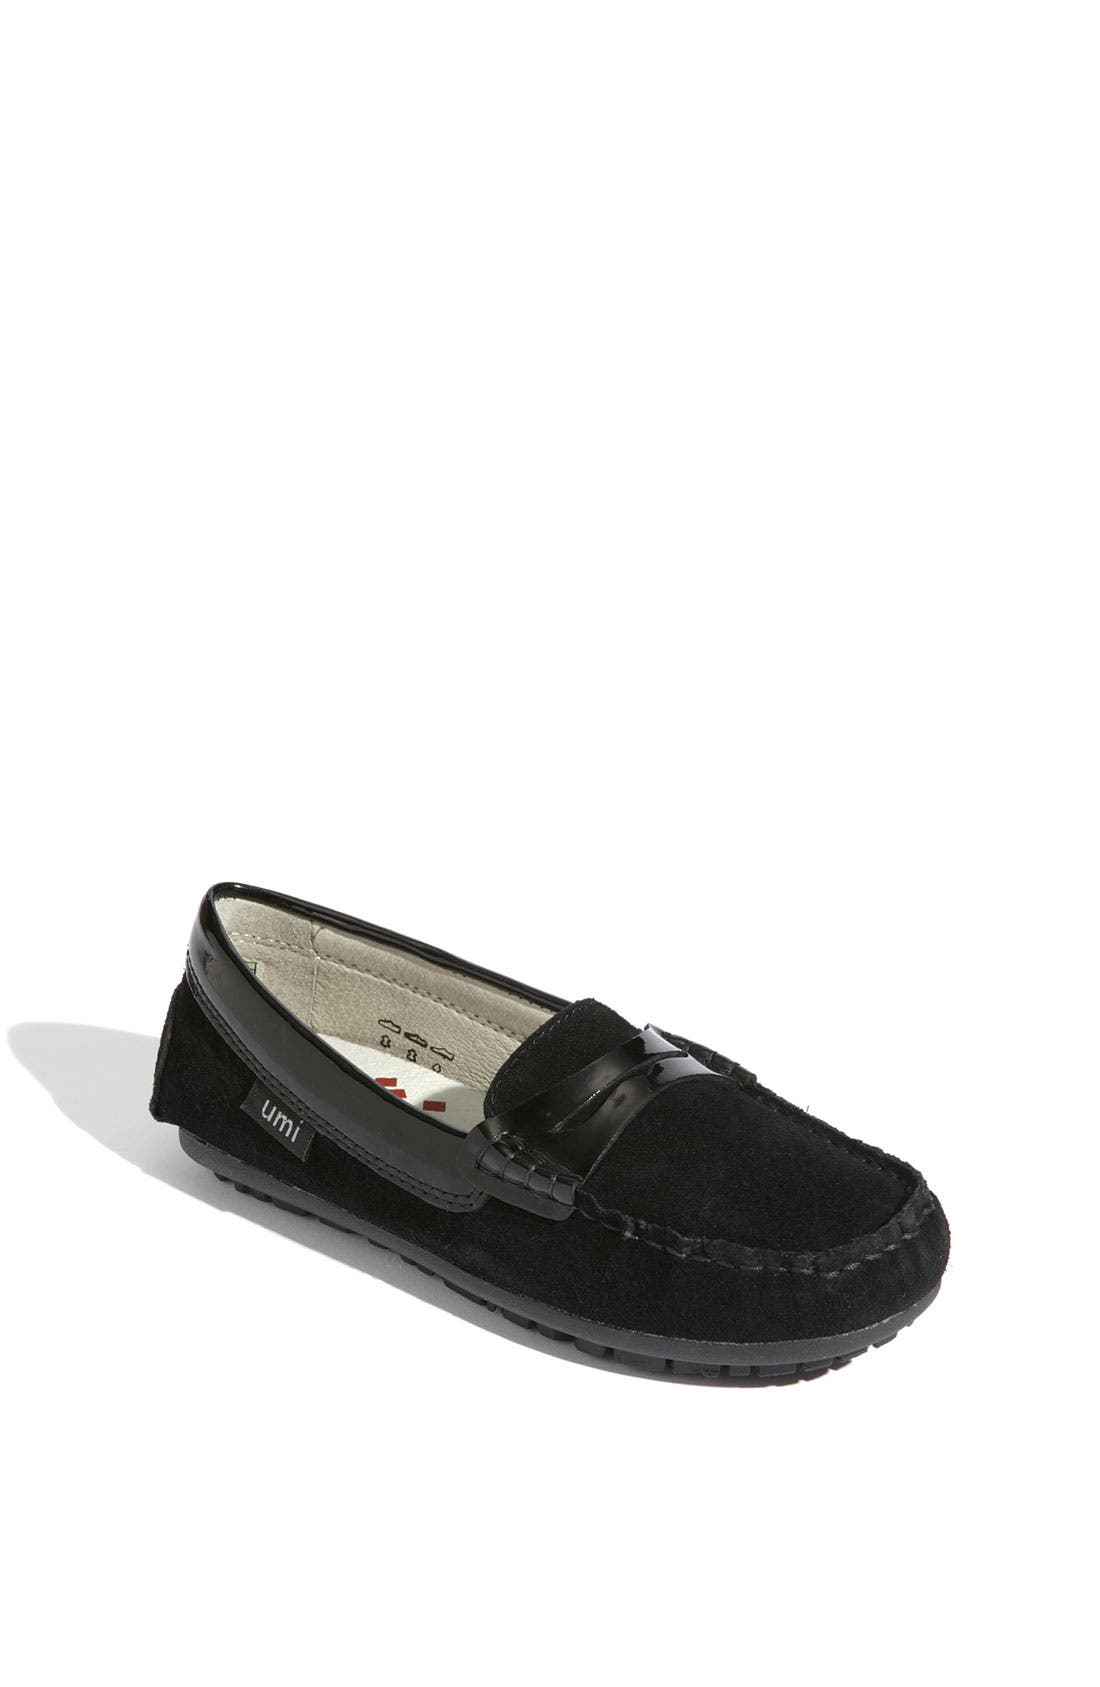 Alternate Image 1 Selected - Umi 'Morie' Moccasin (Toddler)